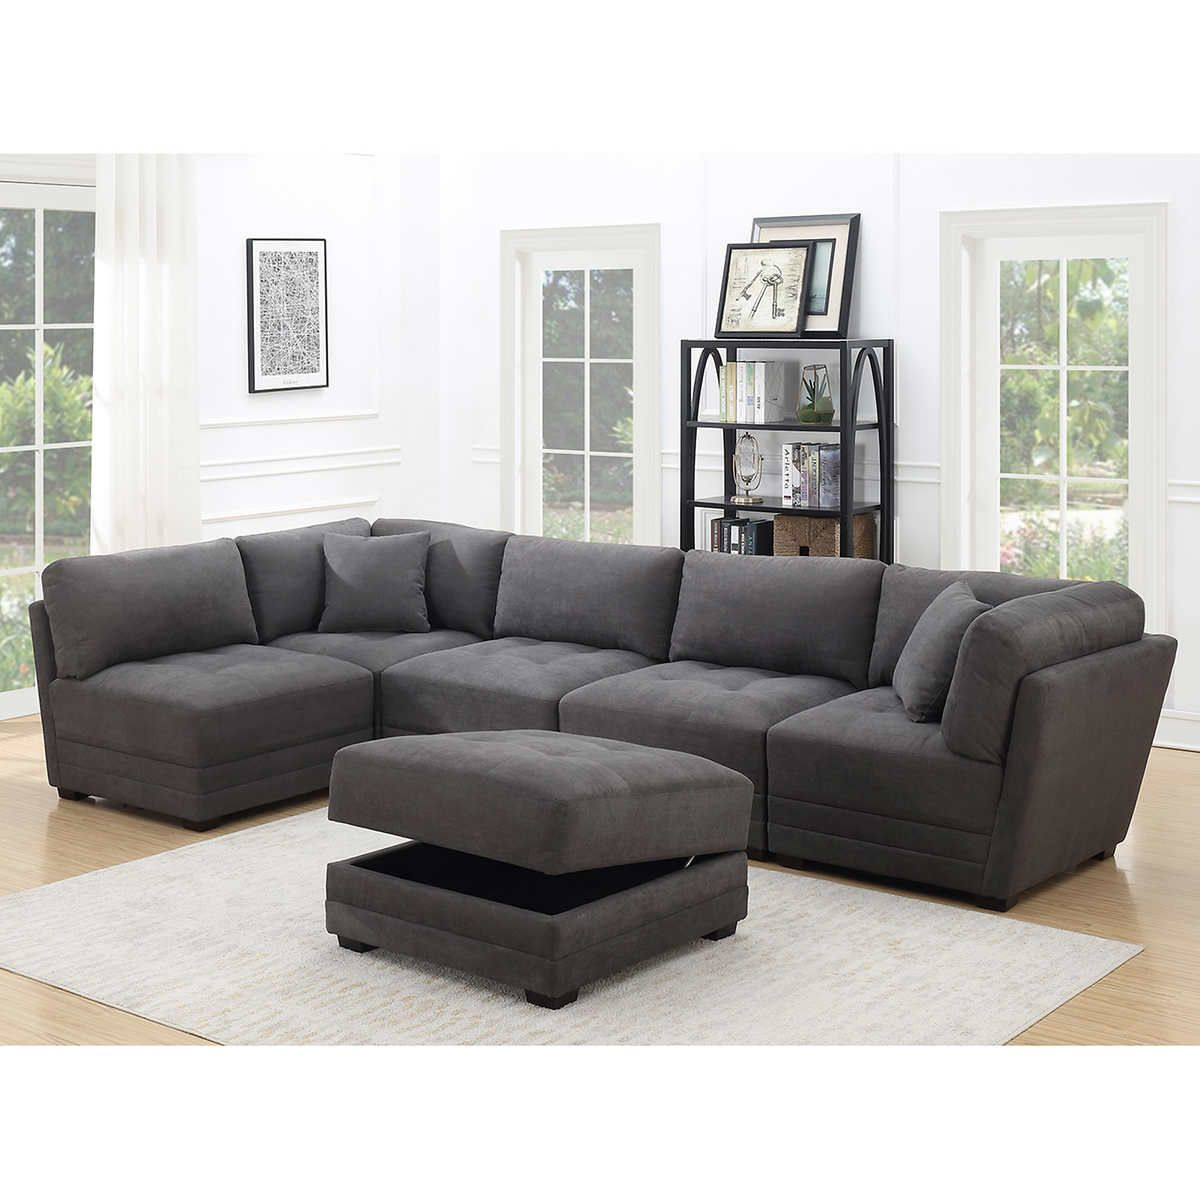 Pin By Emily Mclaughlin On Living Room Modular Sectional Living